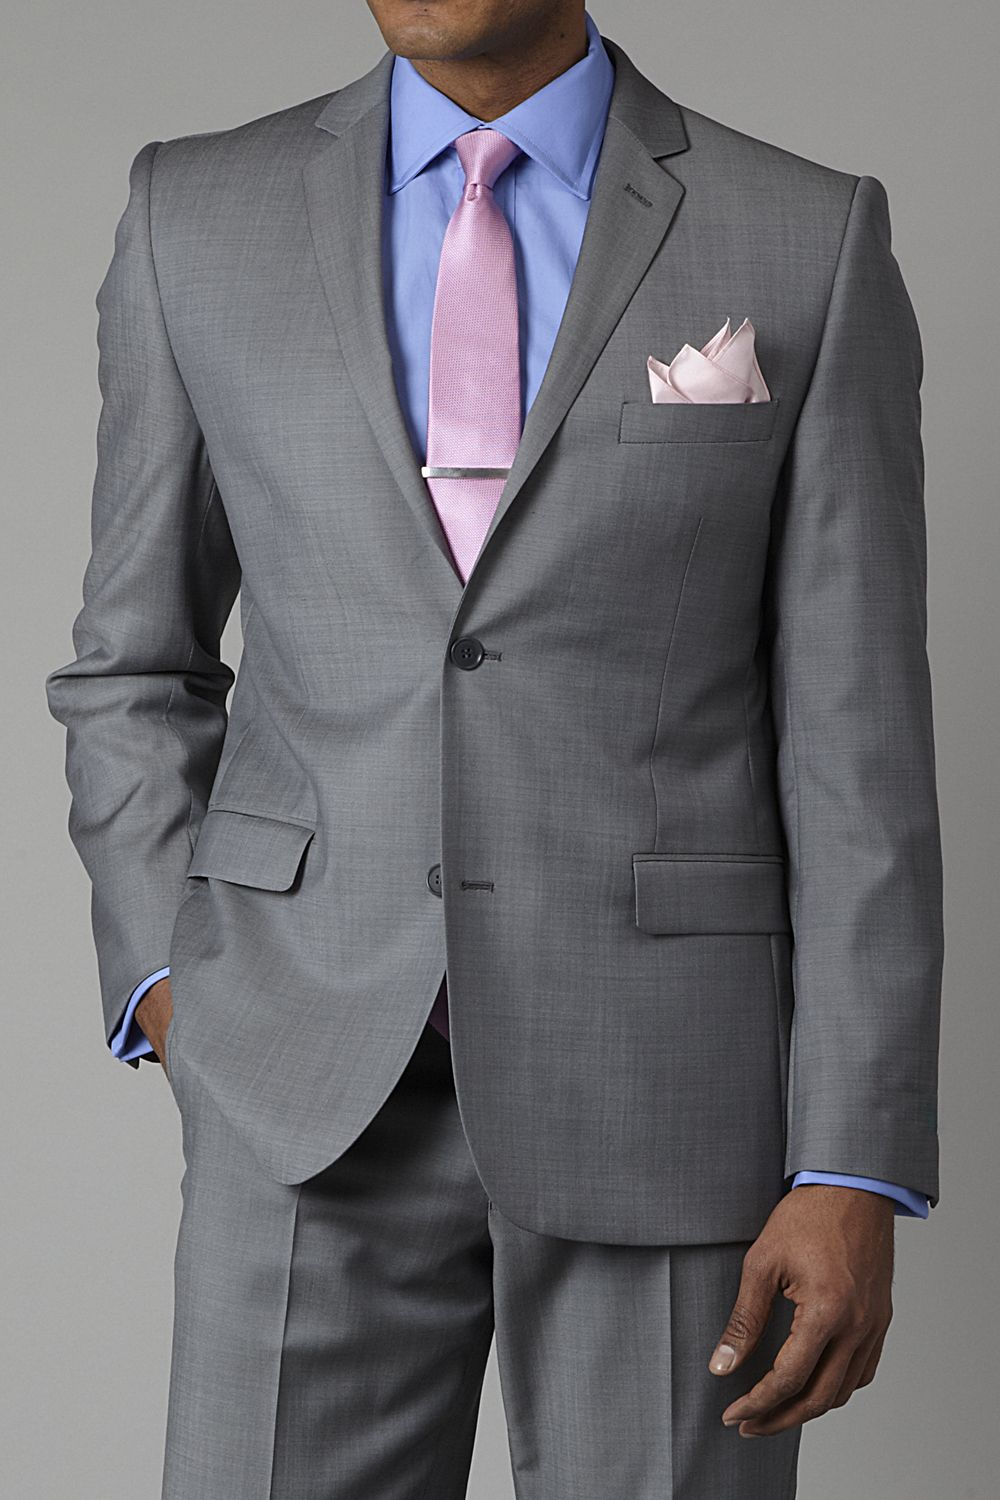 Grey Suit Google Search Grey Suit Pinterest Moss